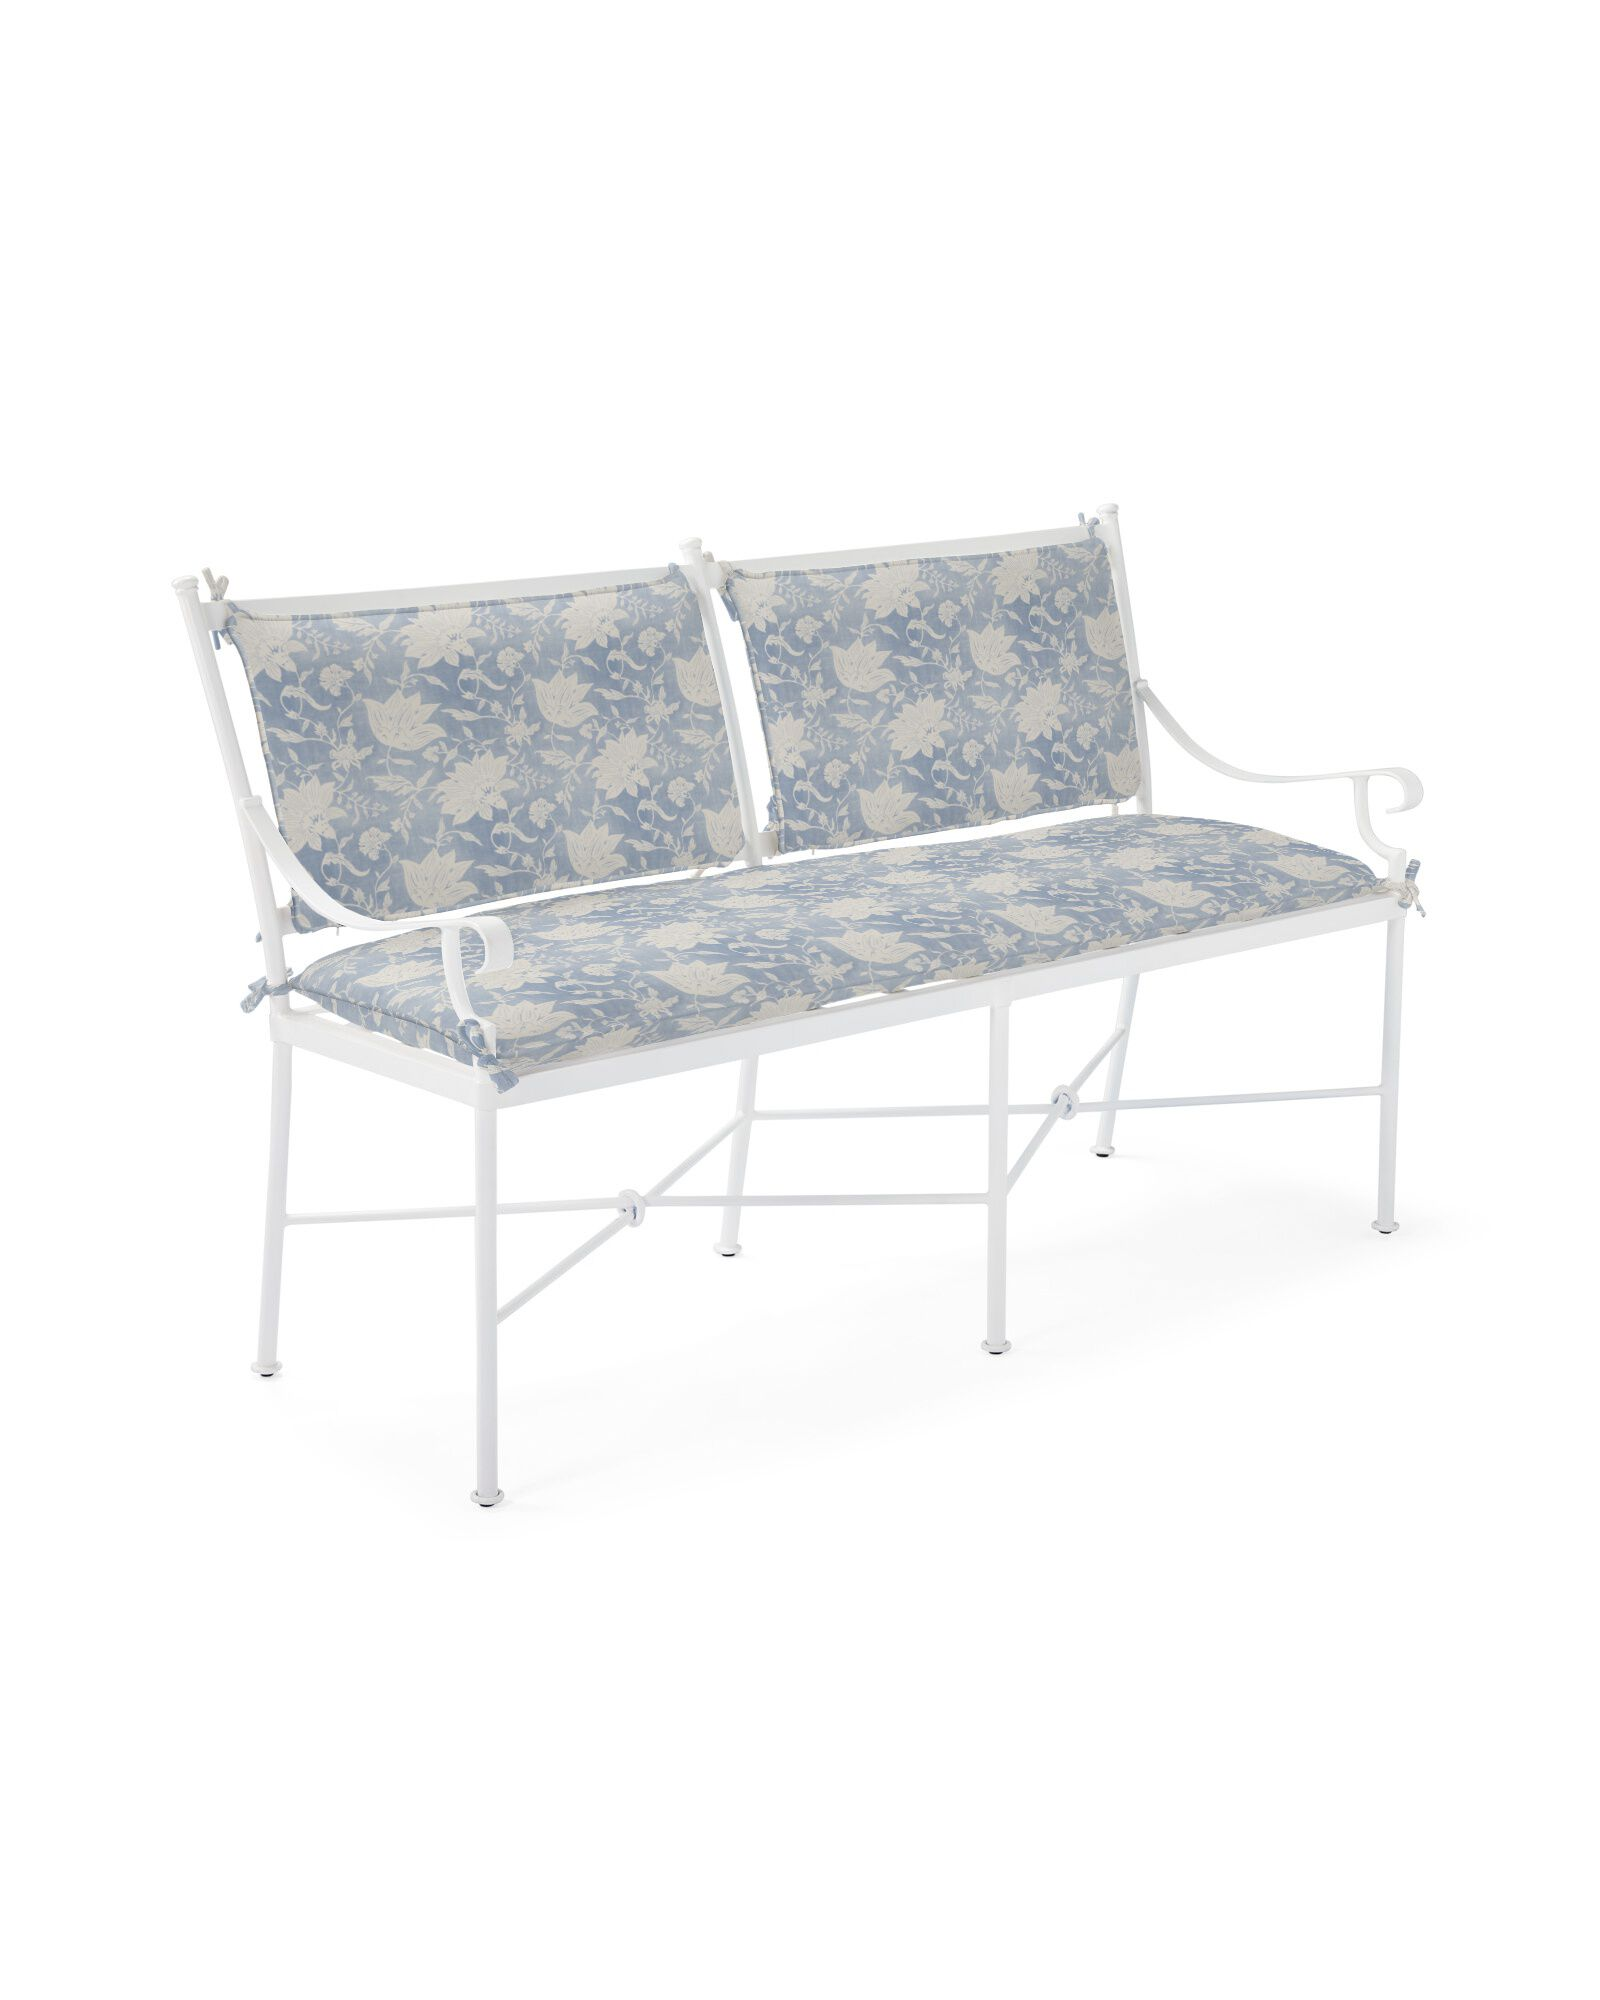 Cushion Cover for Gardener Bench, Deauville Coastal Blue